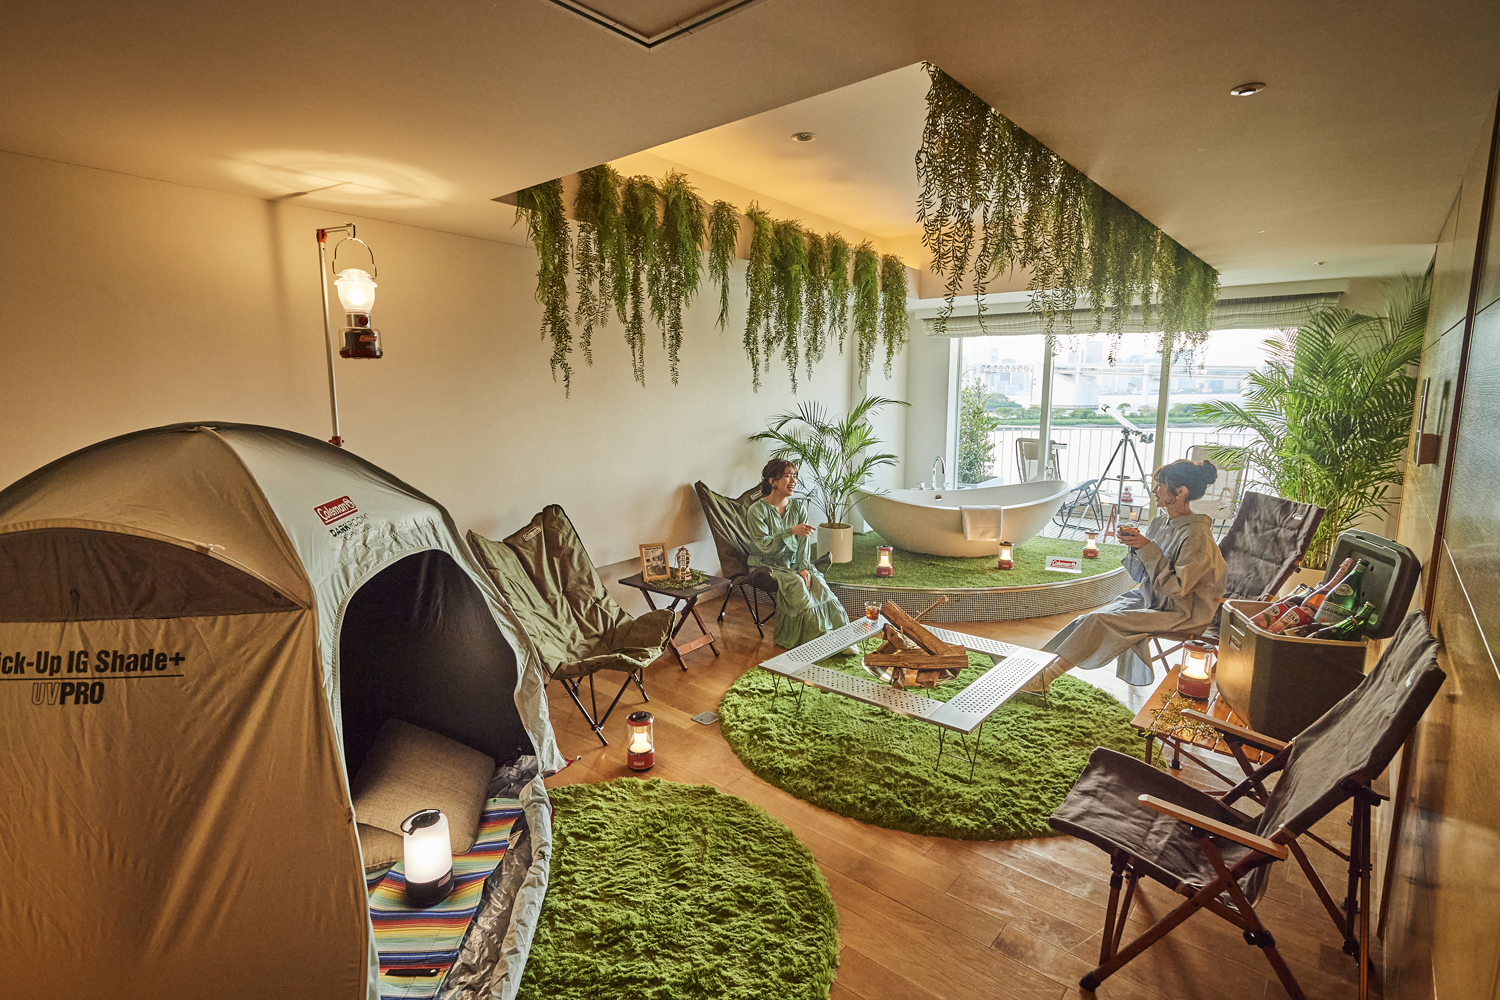 Hilton Tokyo Odaiba now offers in-room camping and seaside barbecues